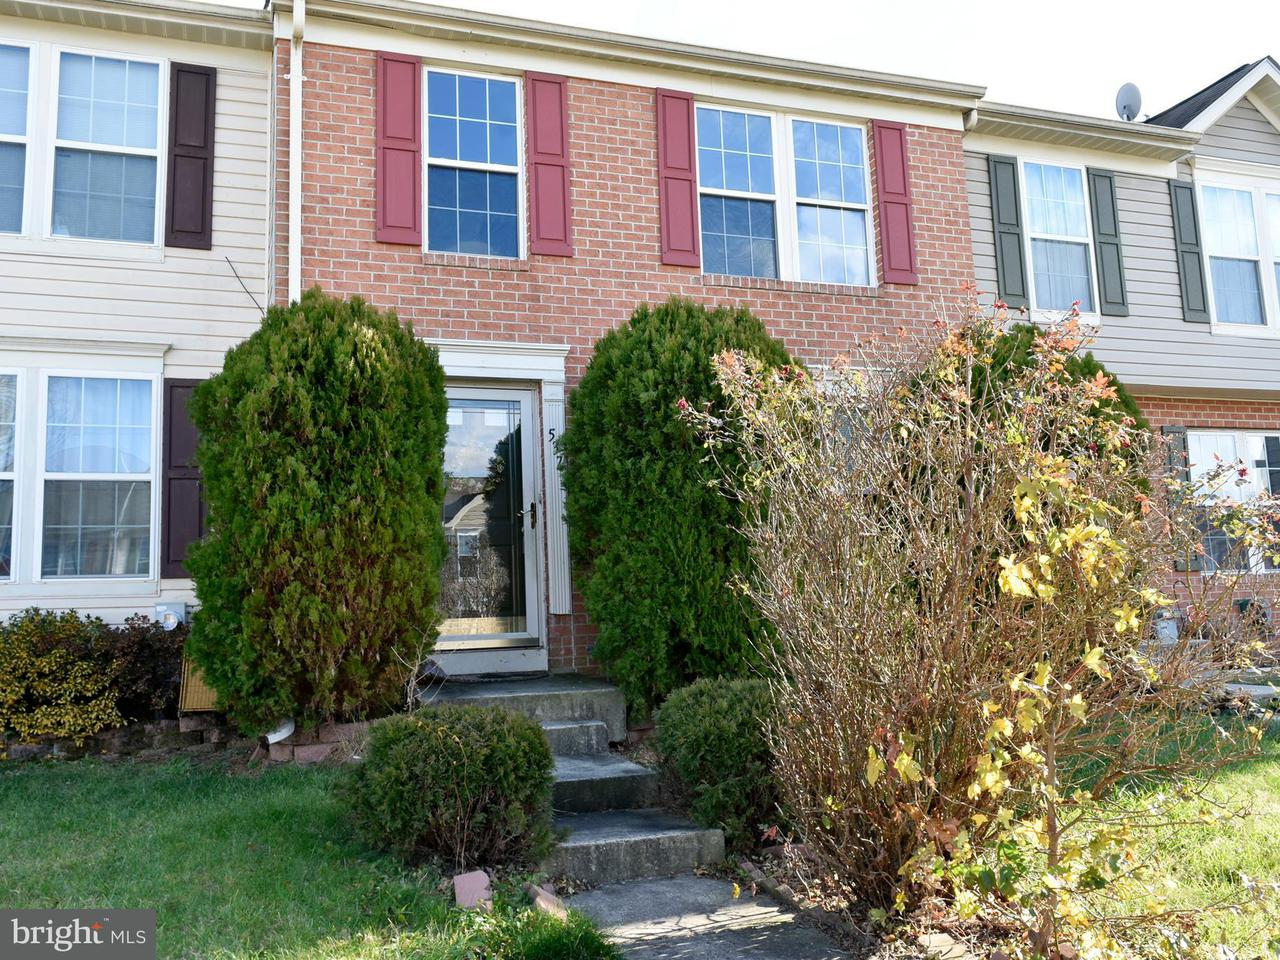 Other Residential for Rent at 537 Macintosh Cir Joppa, Maryland 21085 United States